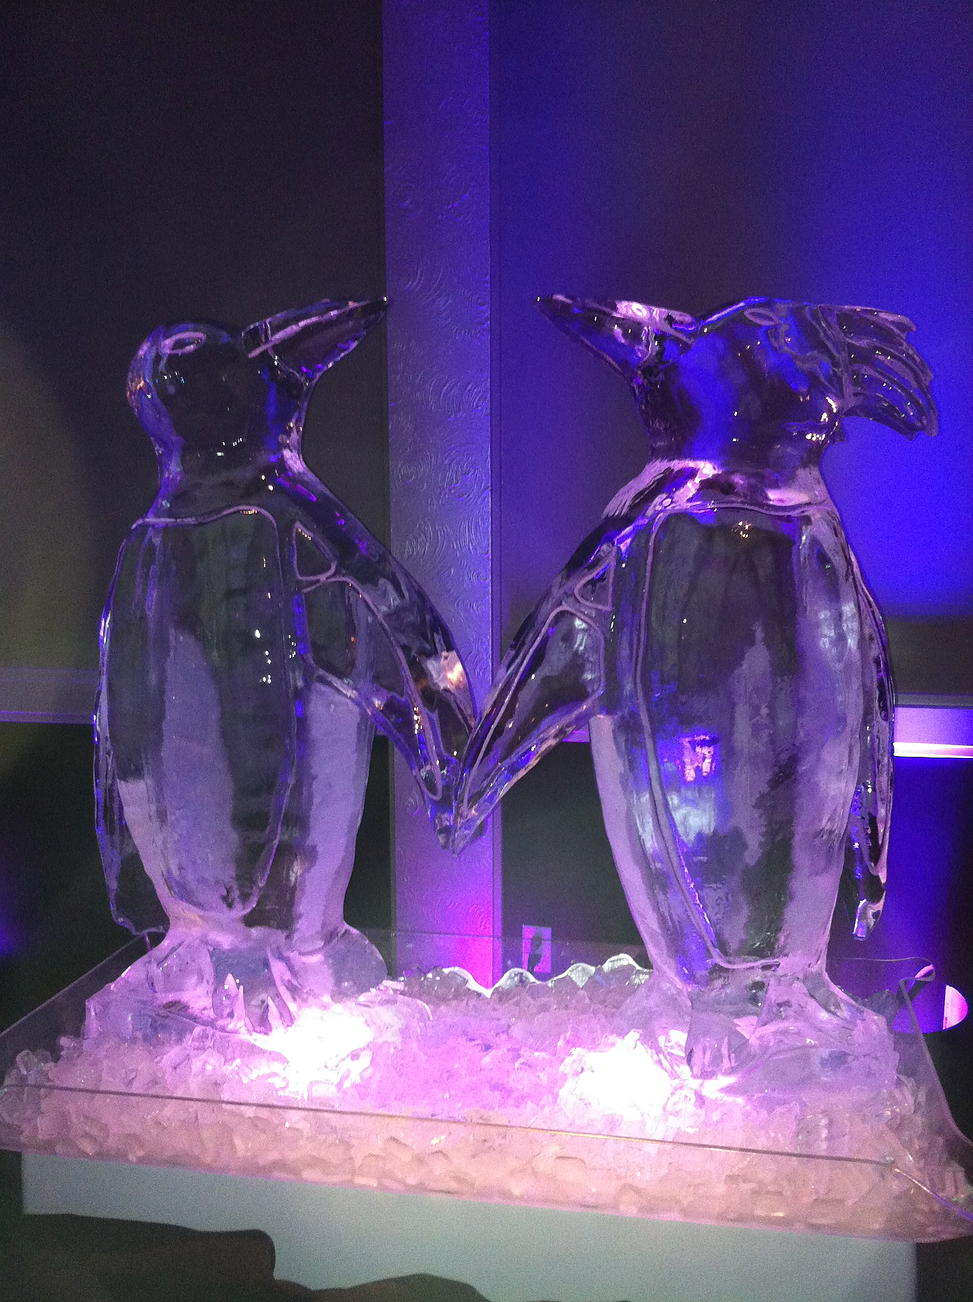 Bride and groom penguins ice sculpture